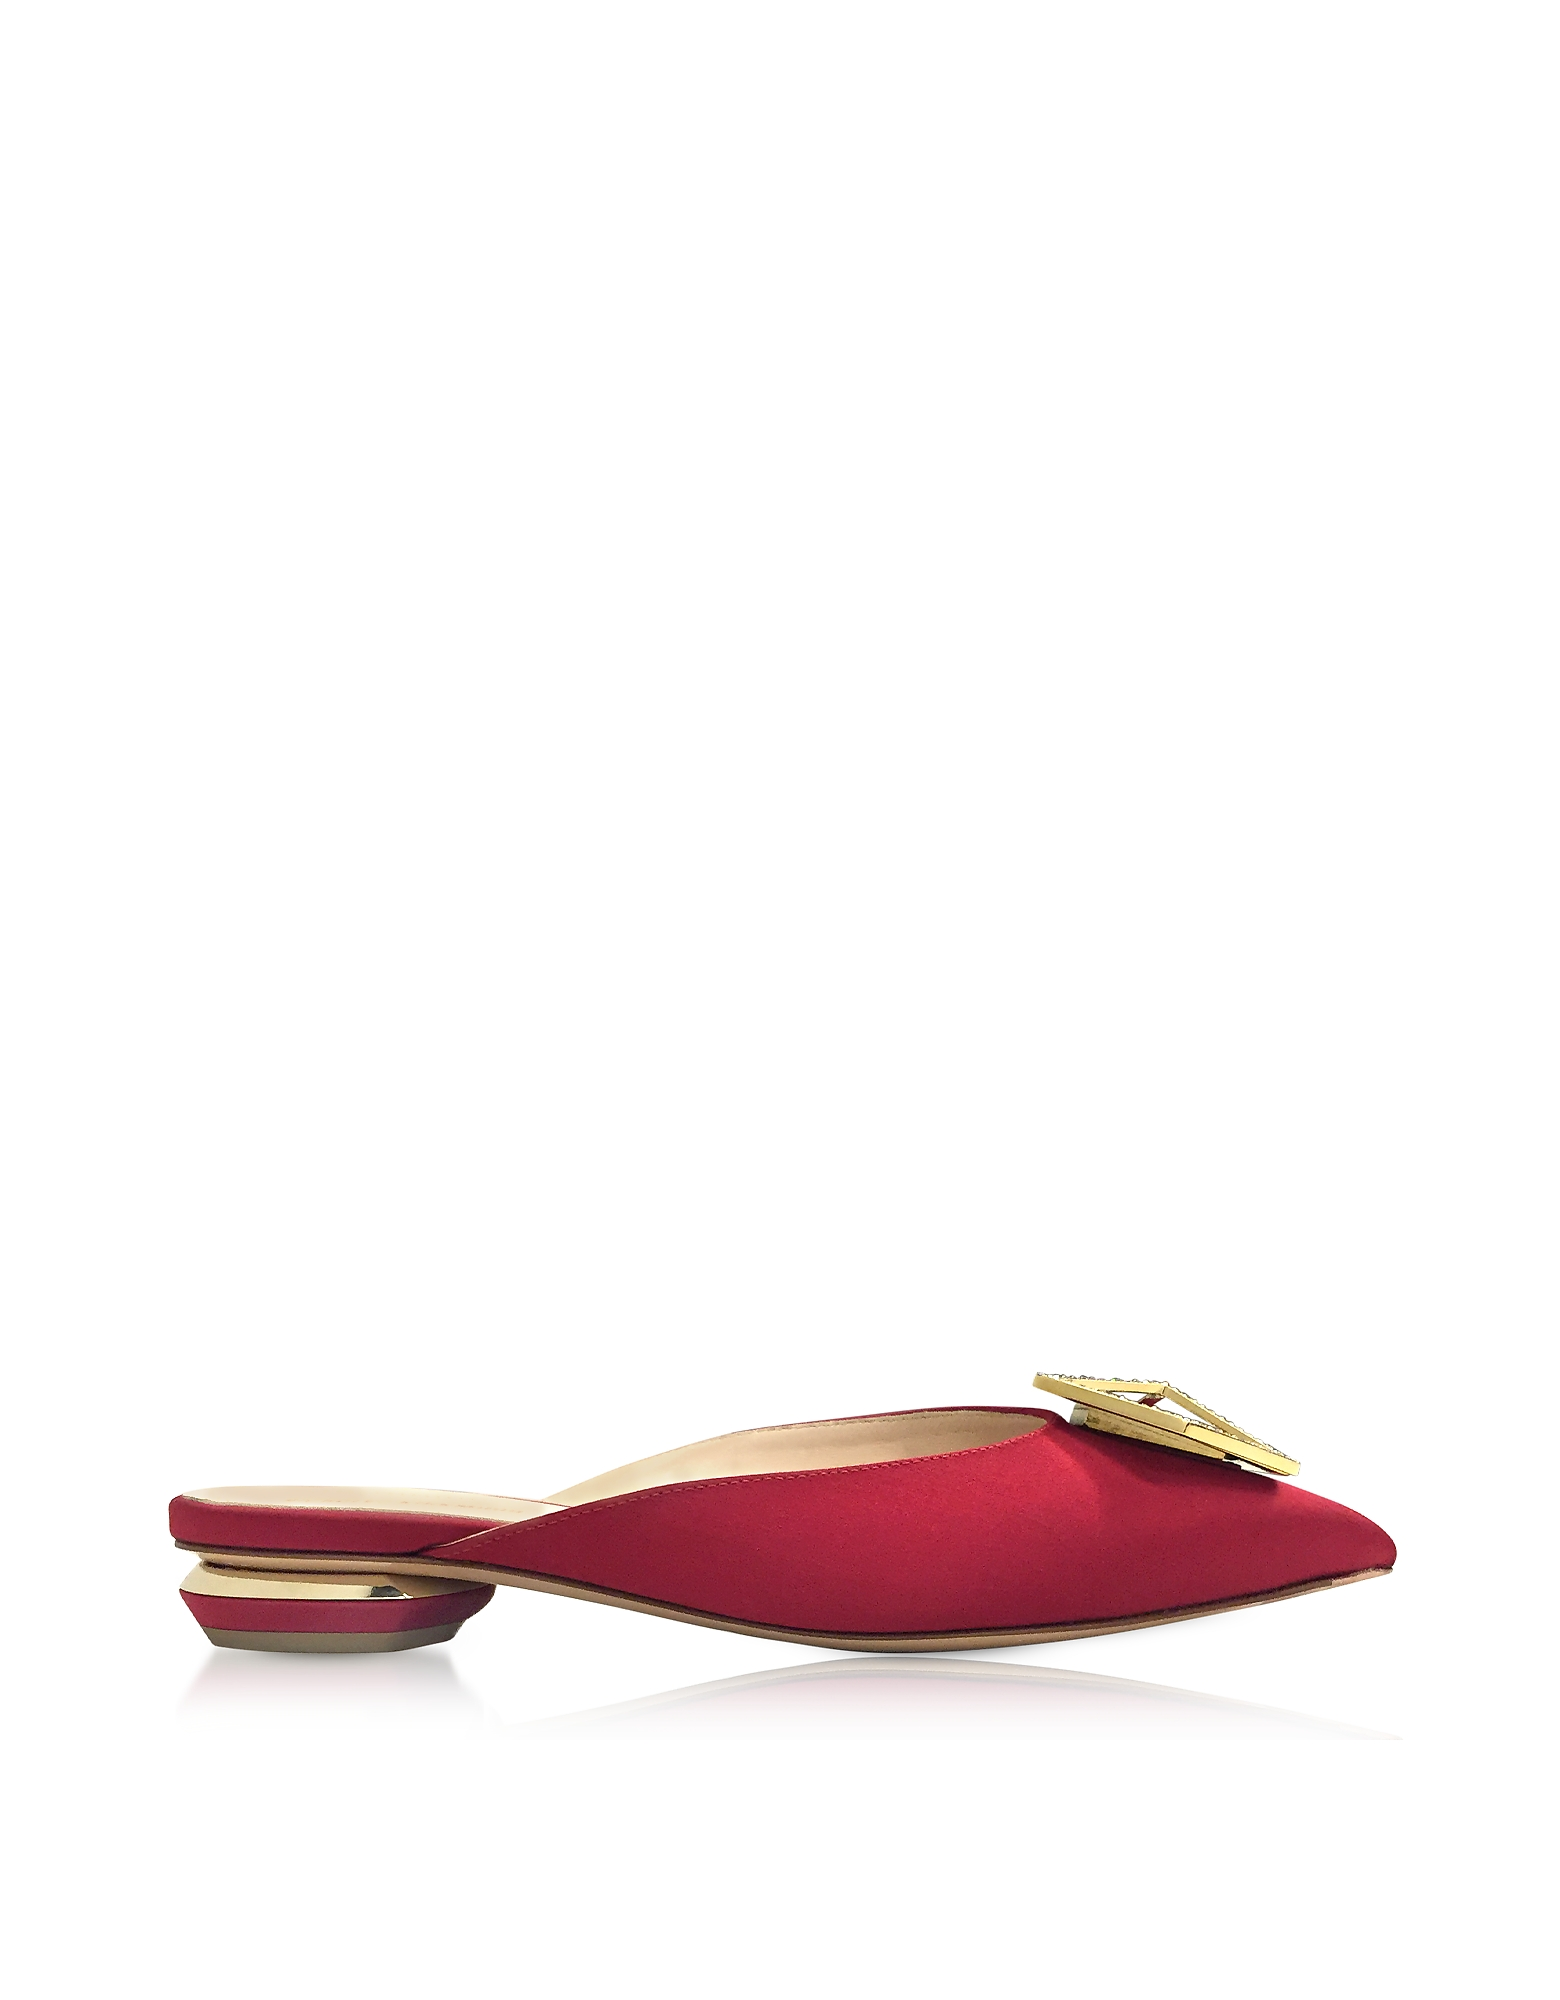 Nicholas Kirkwood Shoes, Eden Carmine Satin Jewel Mule